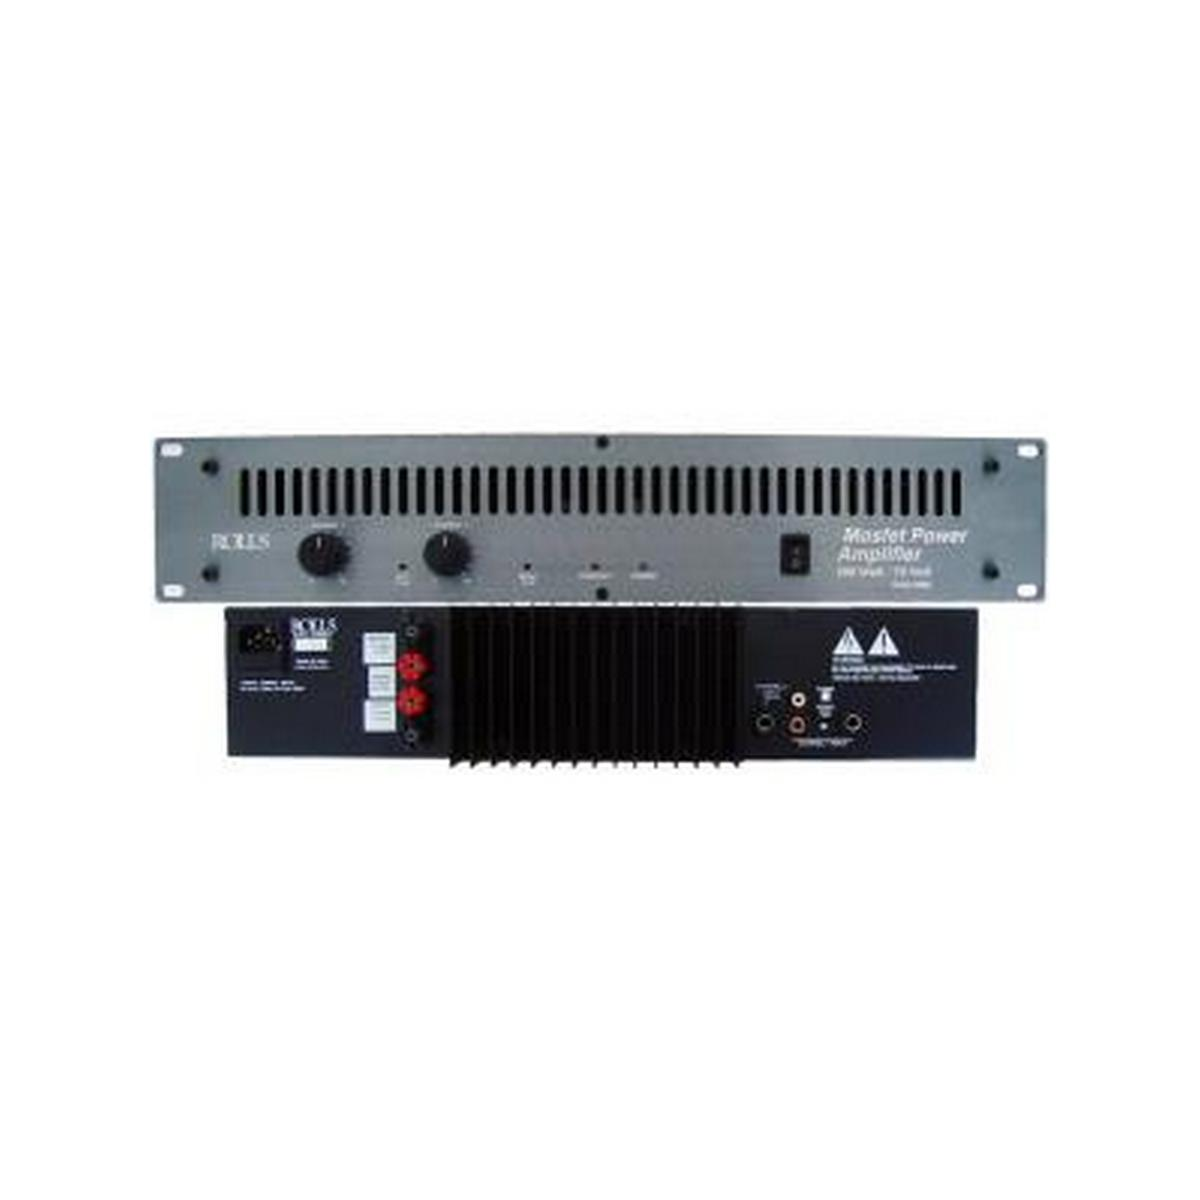 Rolls Ra 2100b 200 Watt/70 Volt Power Amp 2U